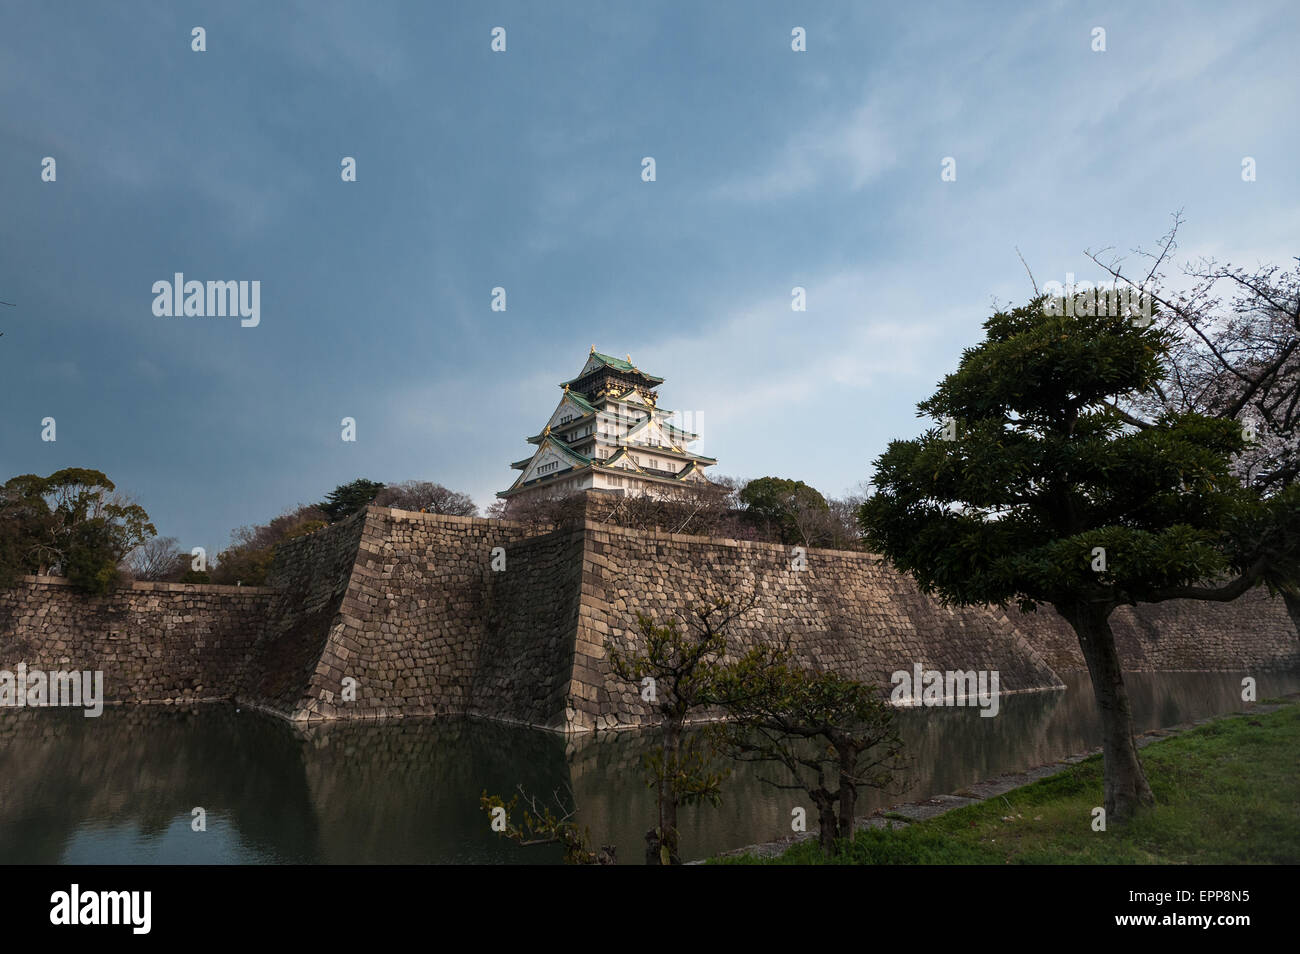 The Osaka Castle of Japan during the cherry blossom season in spring Stock Photo